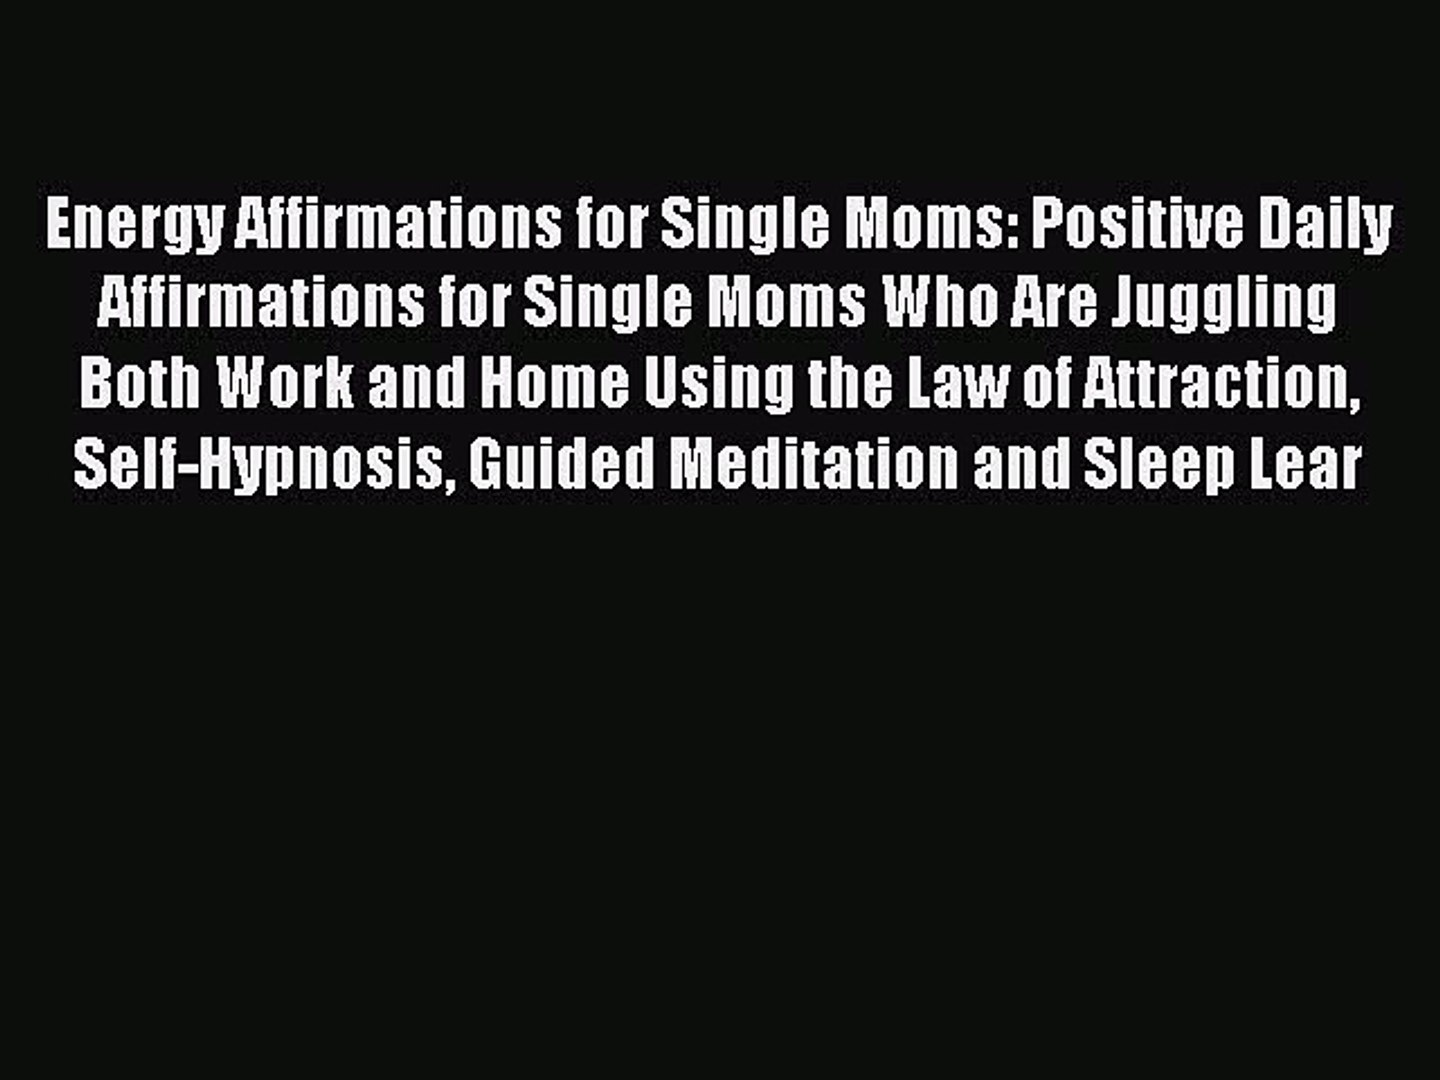 Read Energy Affirmations for Single Moms: Positive Daily Affirmations for Single Moms Who Are